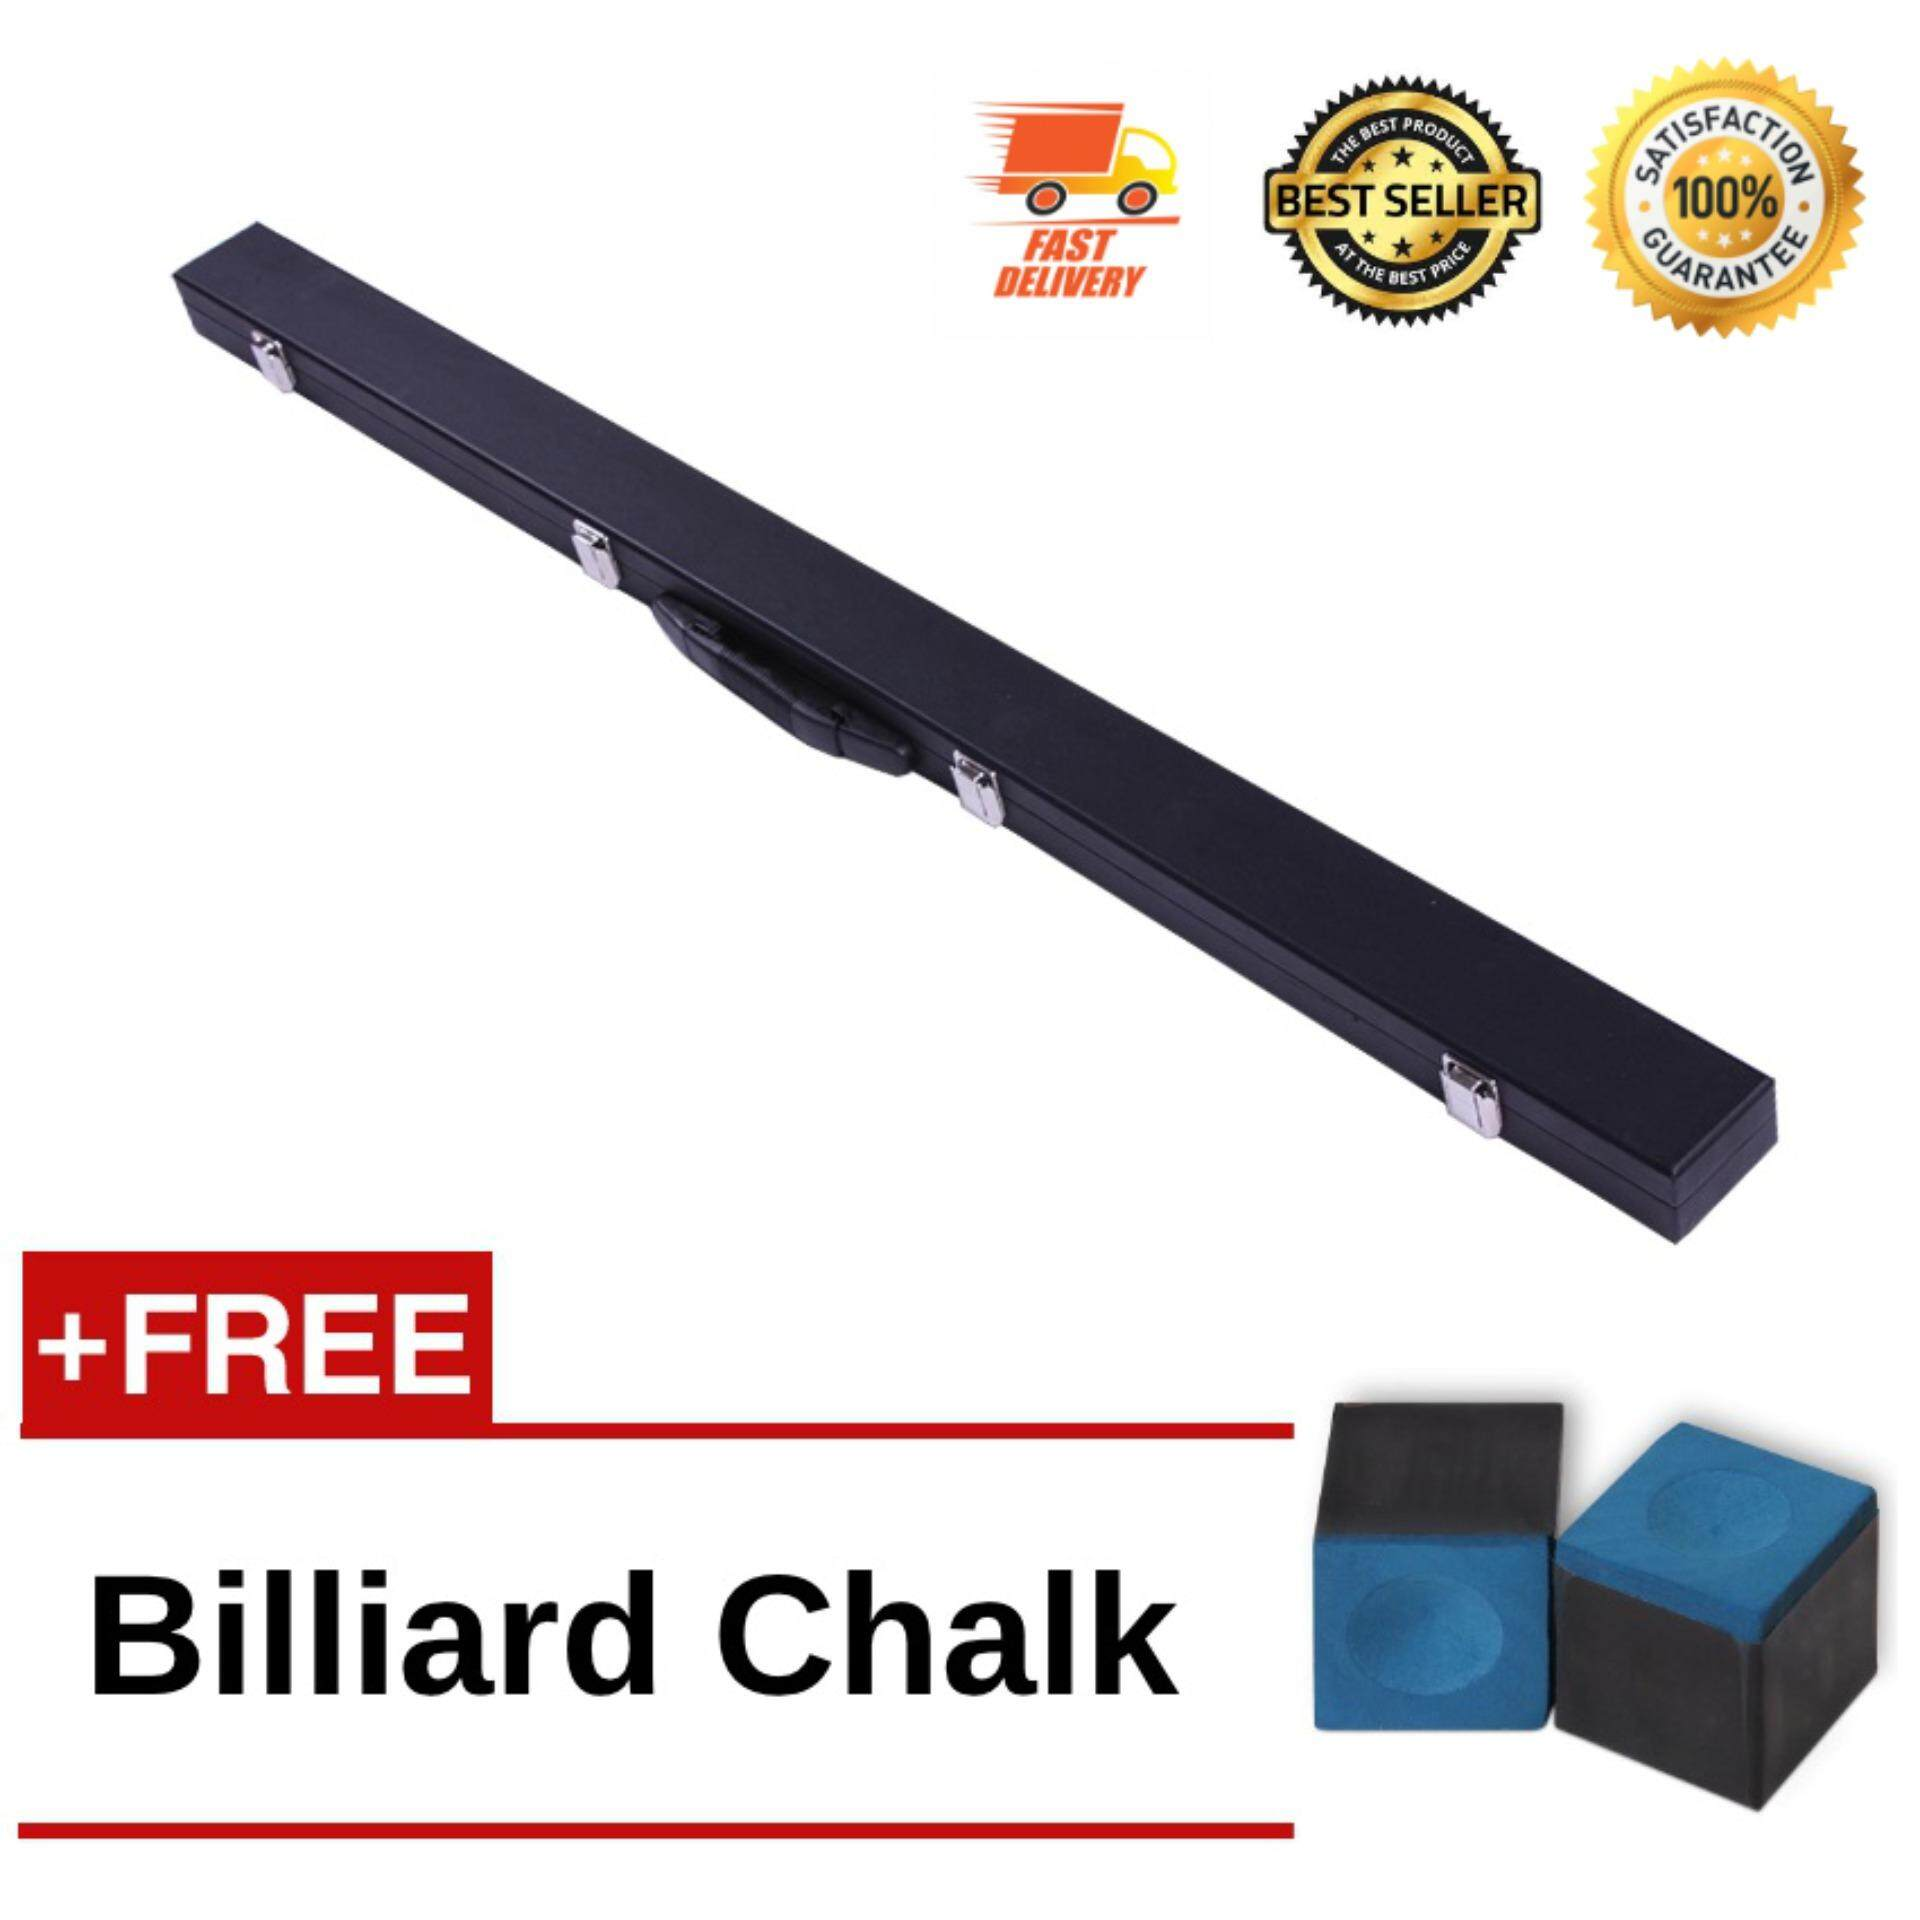 3/4 Billiard Pool/Snooker Hard Box Cue Case Bag Holder